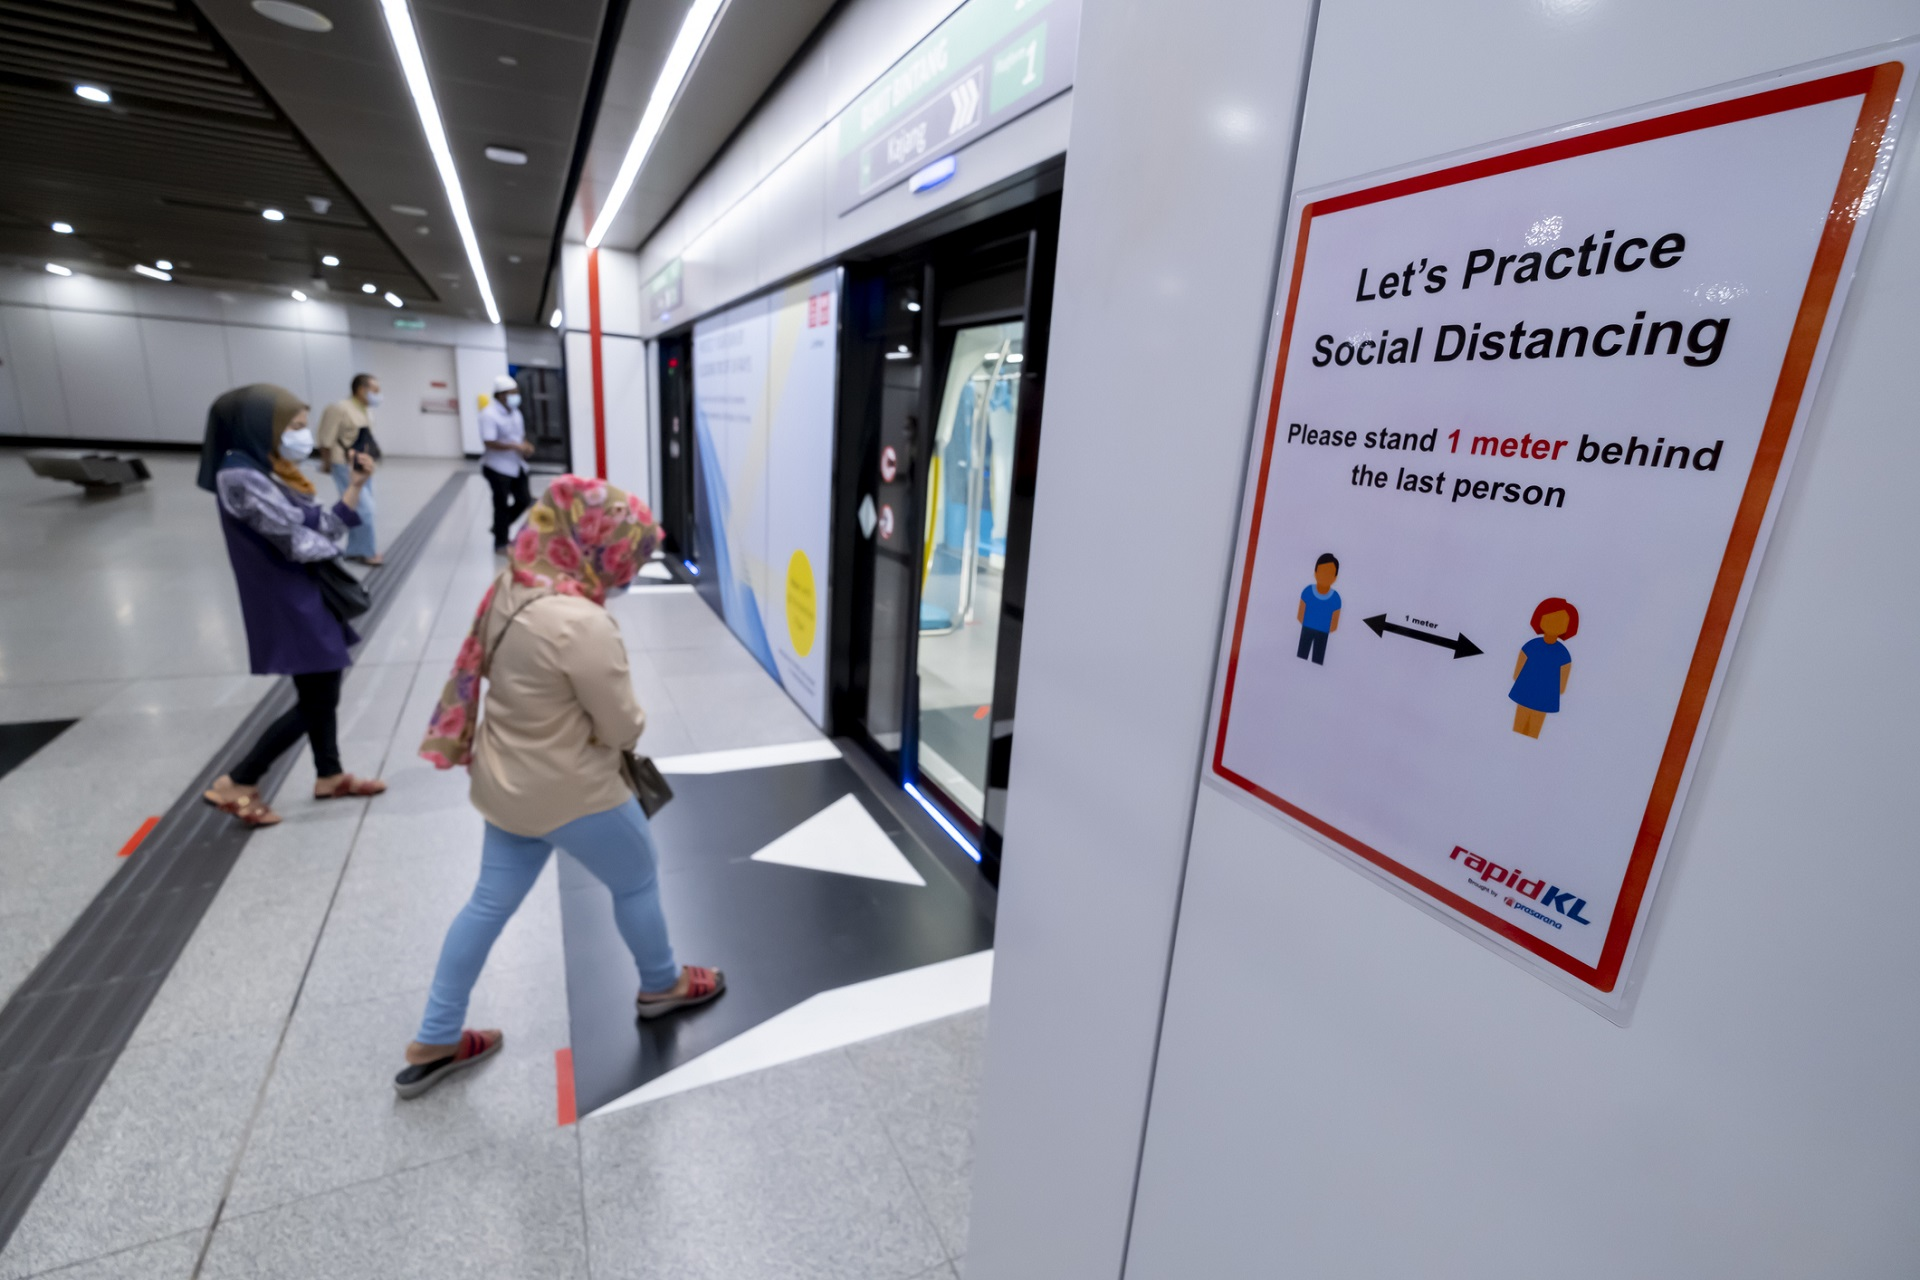 Commuters wear a face mask and practice social distancing at the MRT station in Kuala Lumpur. iStock/razaklatif